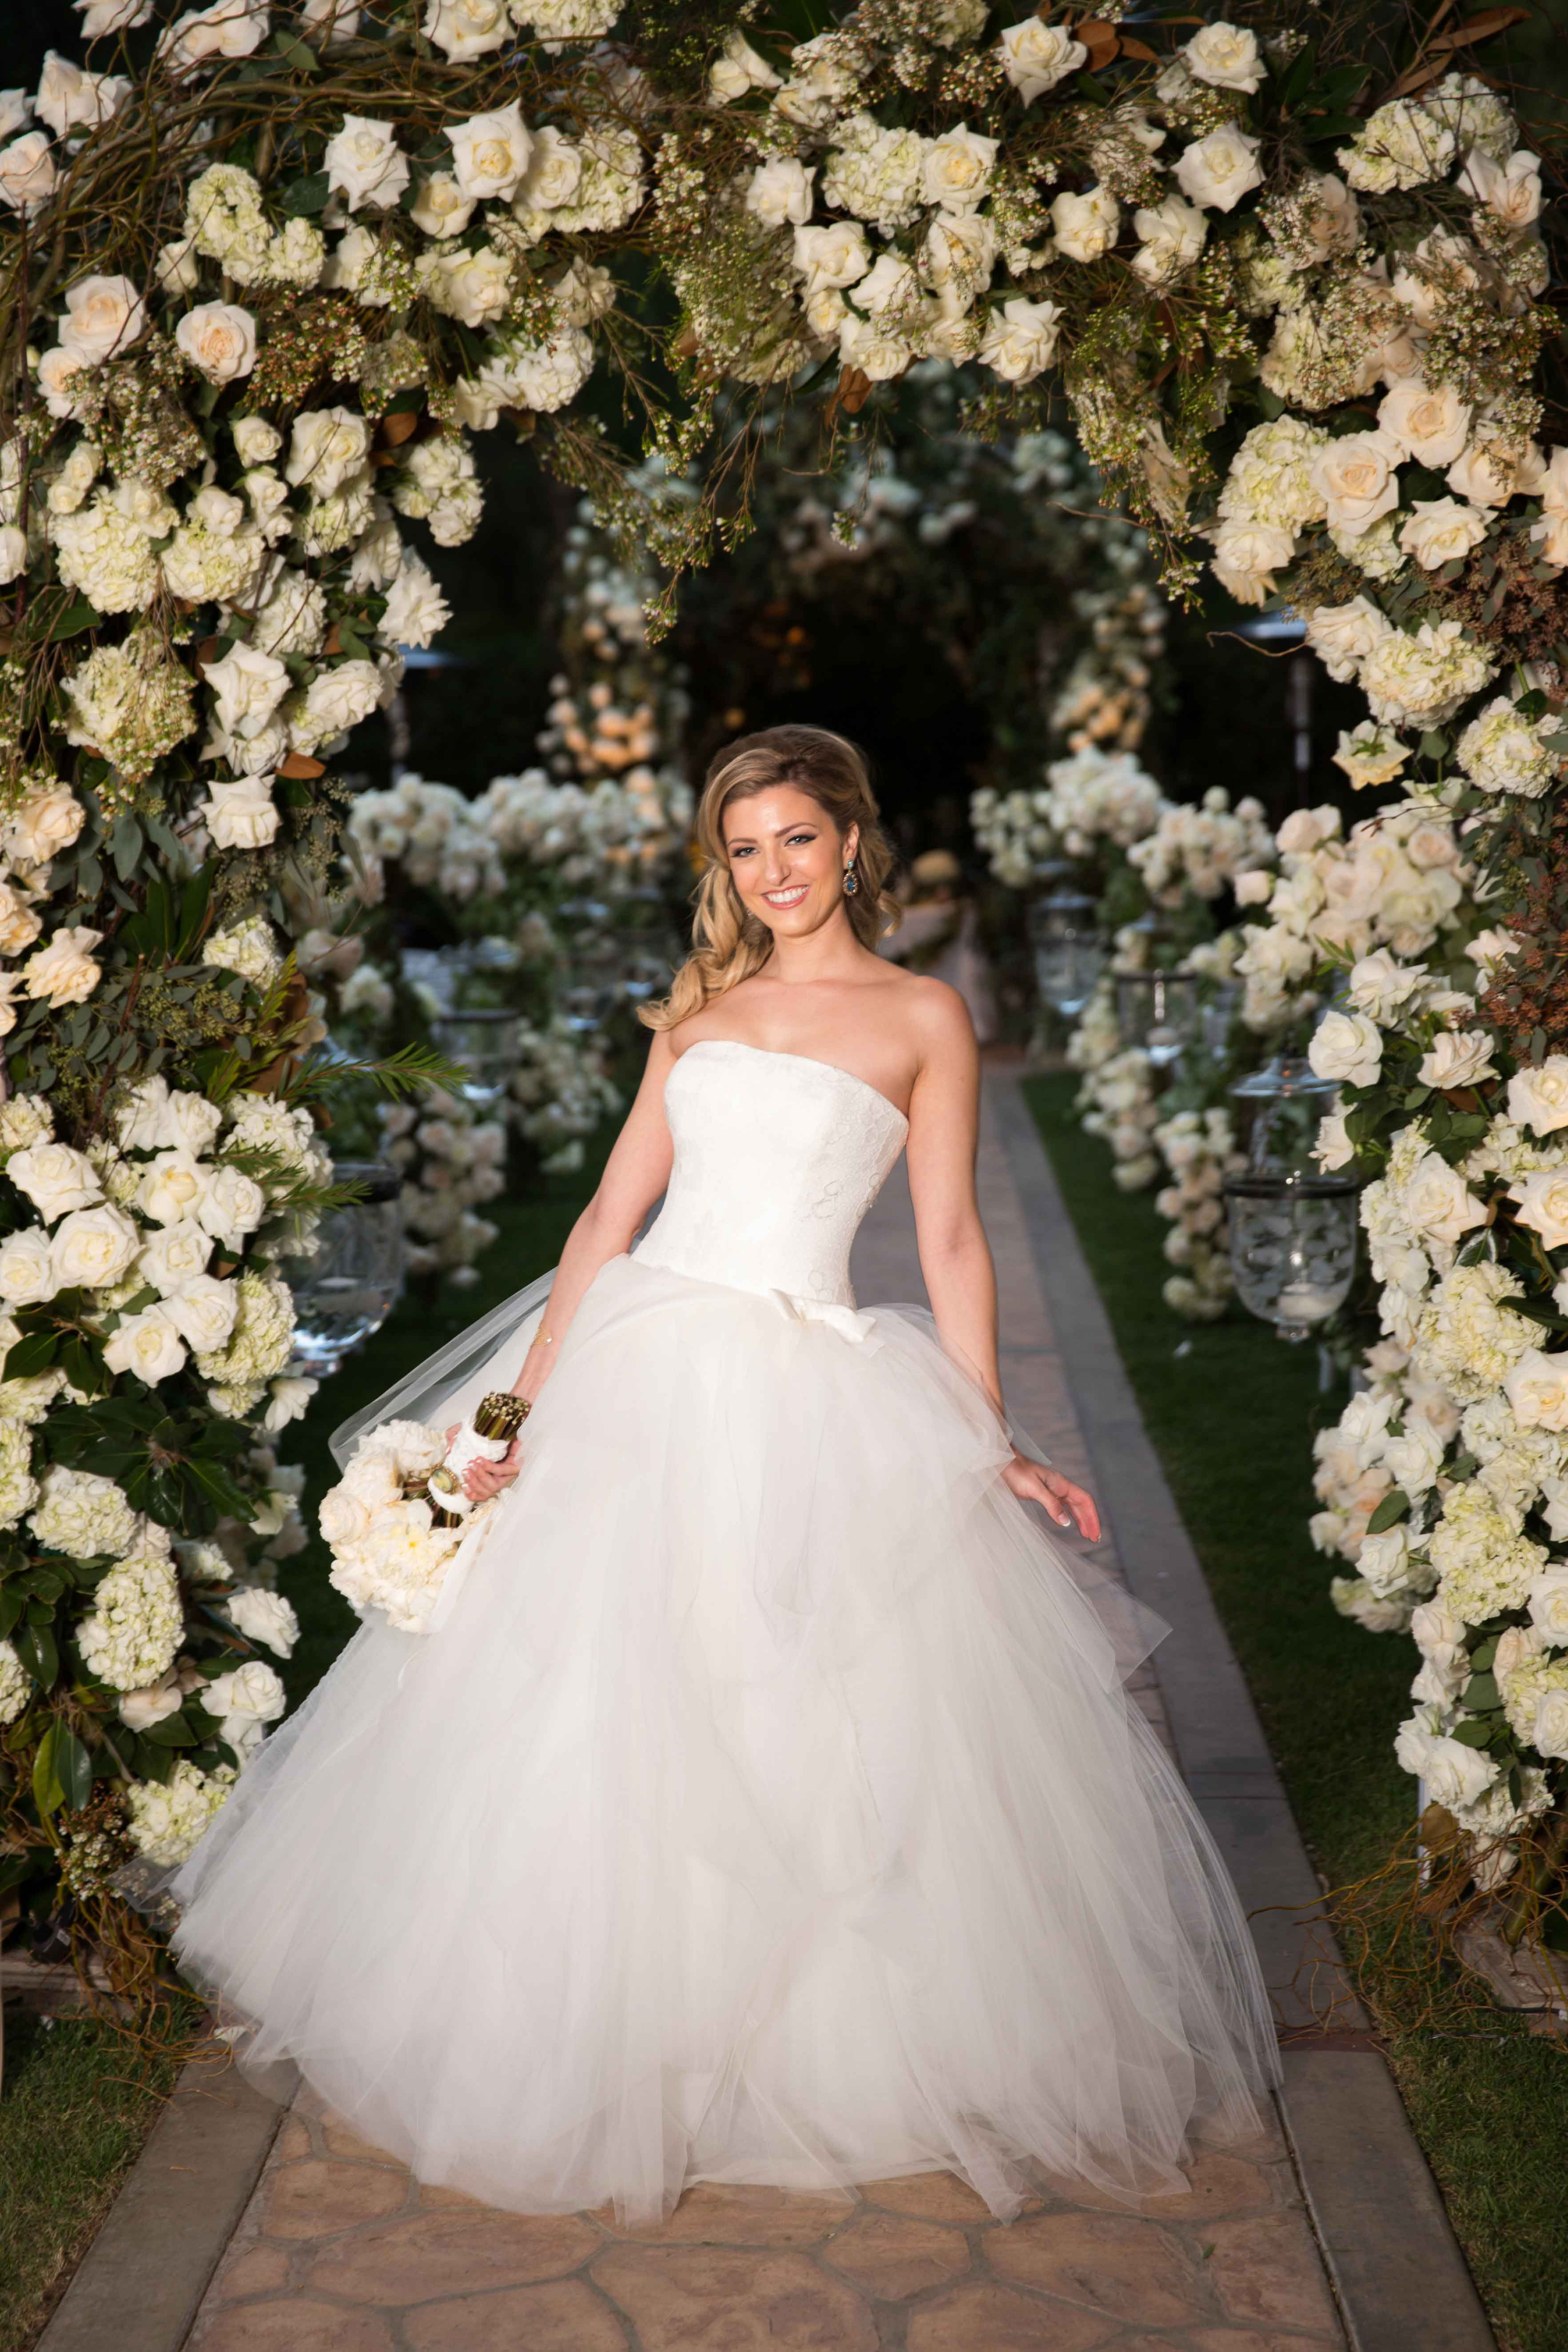 bride in vera wang strapless tulle ball gown holding bouquet off to the side, shows off dress